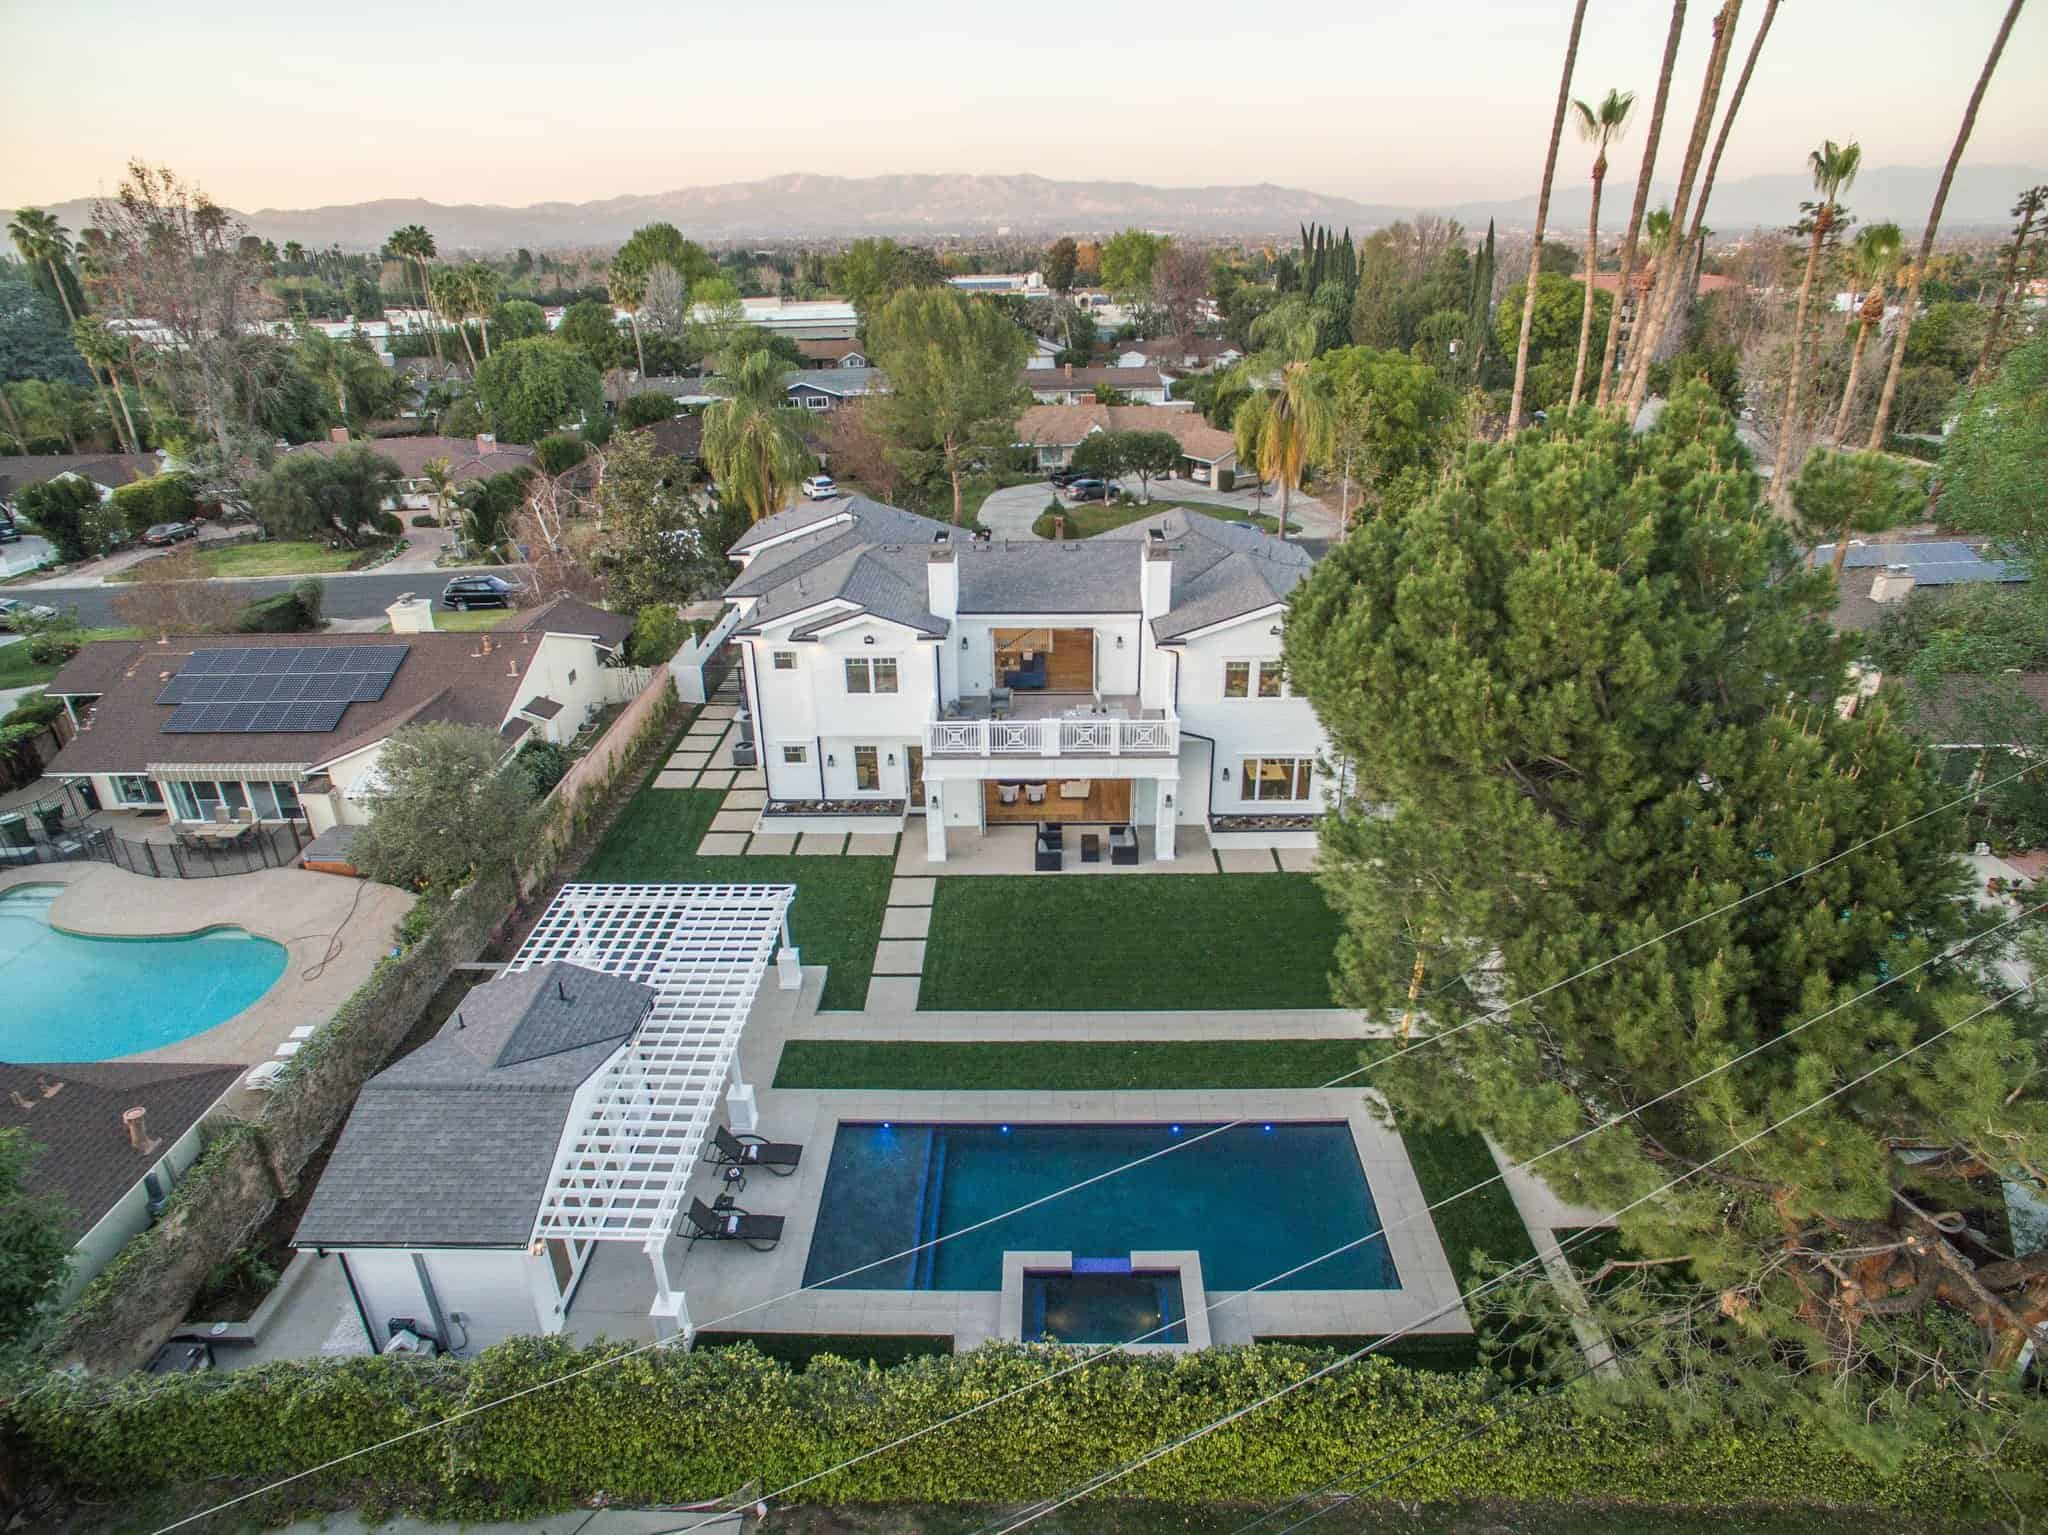 Aerial view of the home featuring the beautiful construction and landscaping of the property.